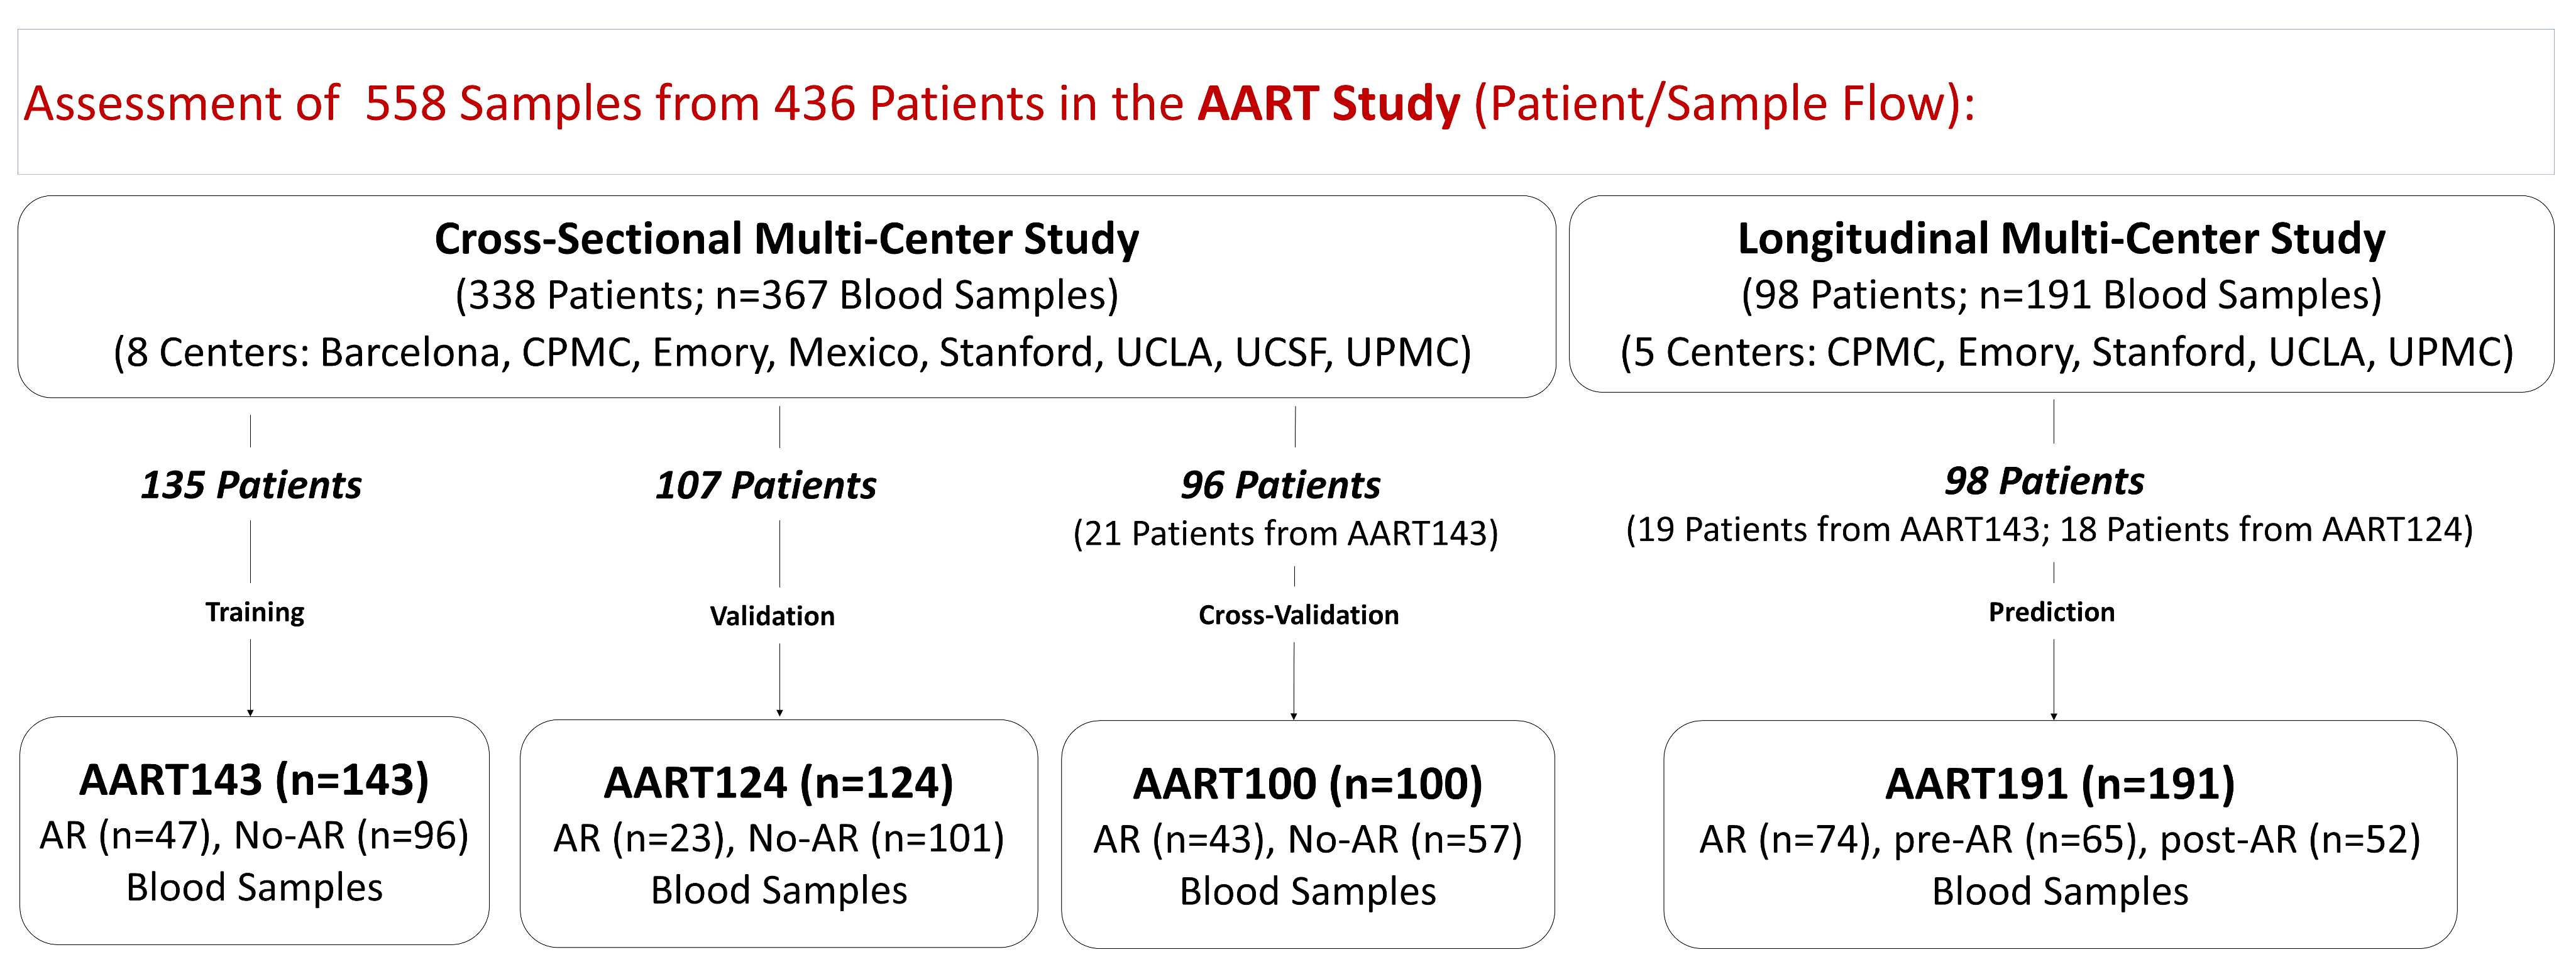 AART study design in 436 unique adult/pediatric renal transplant patients from eight transplant centers.